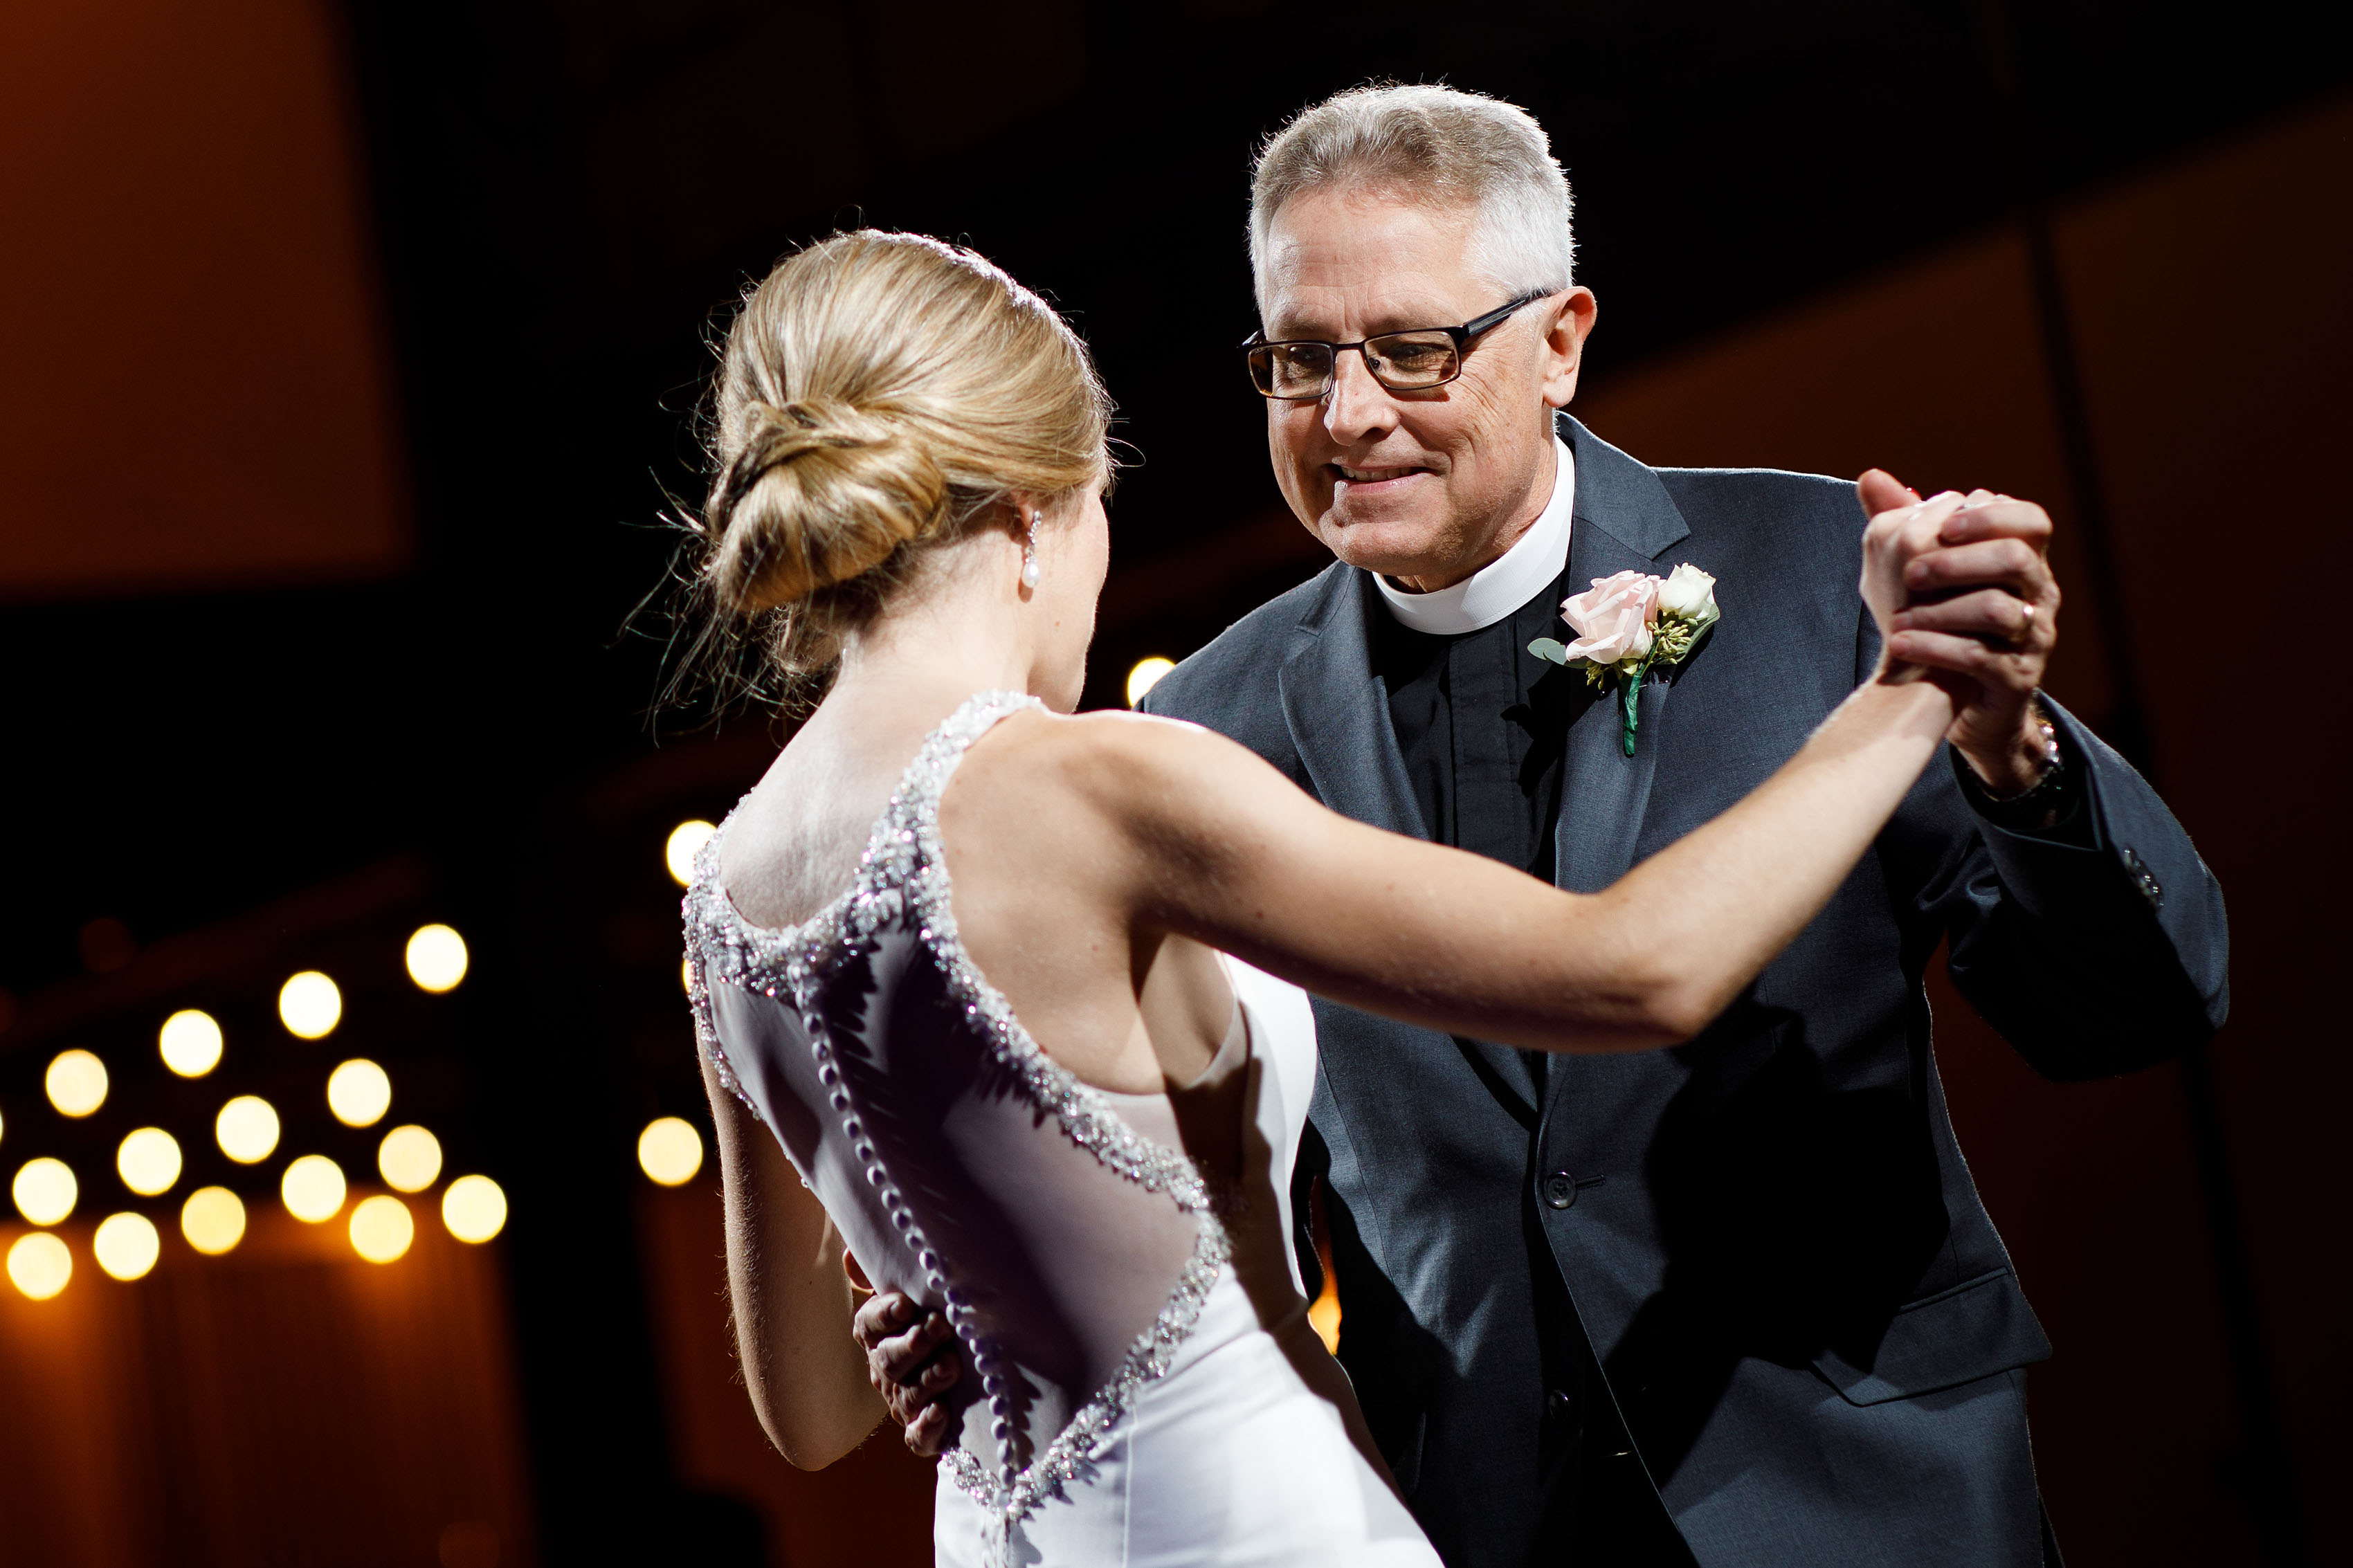 Ashley dances with her father during her wedding in Orange